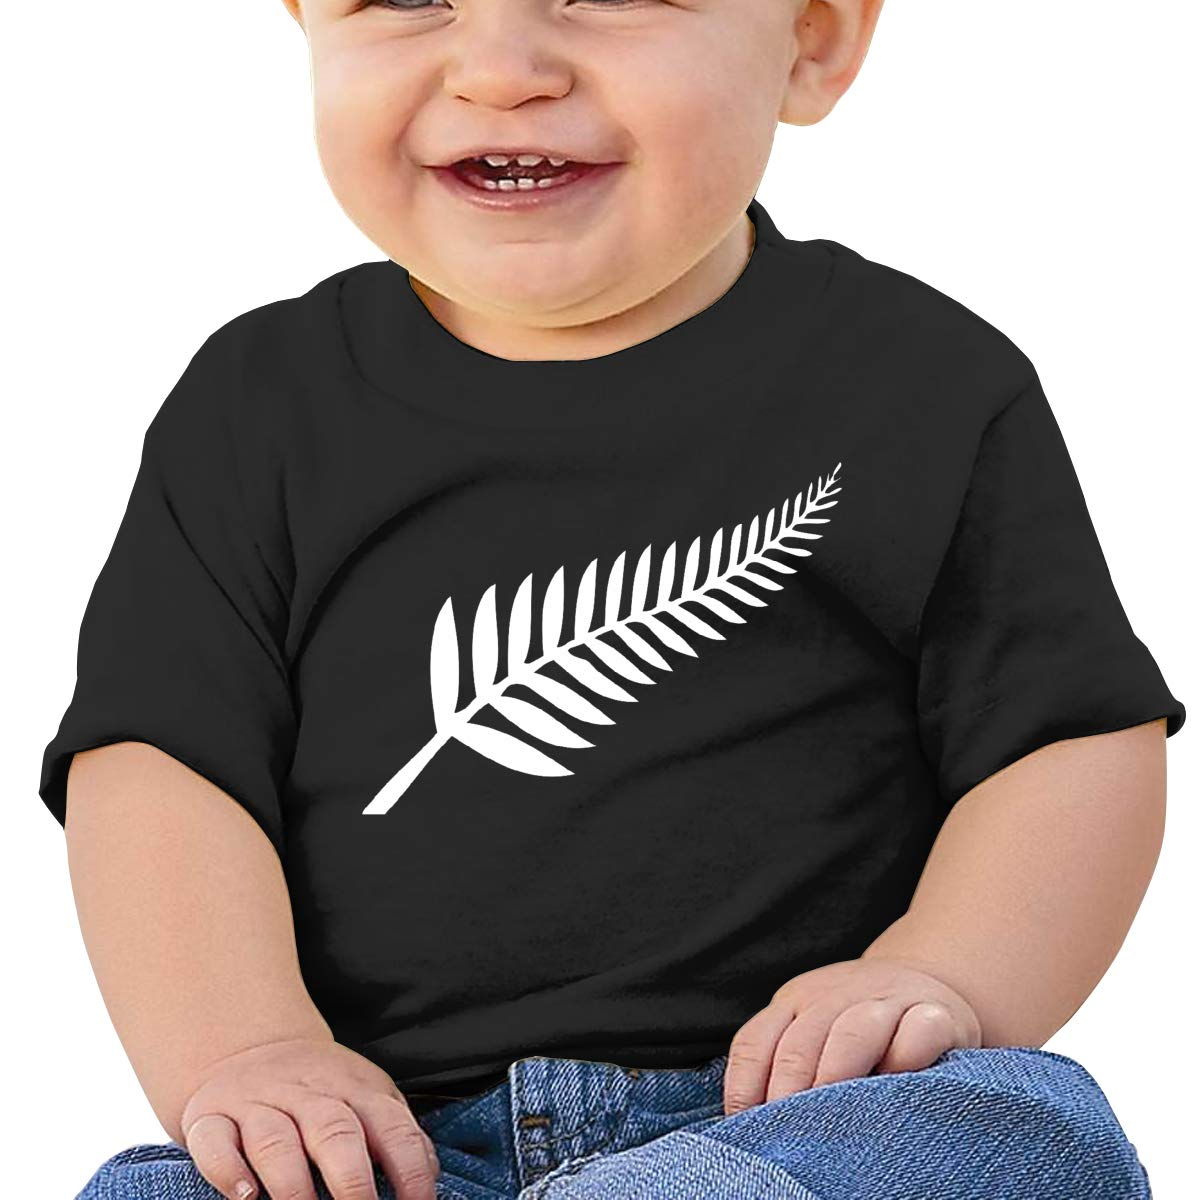 JVNSS New Zealand Baby T-Shirt Little Baby Cotton T Shirts Funny Basic Shirt for 6M-2T Baby